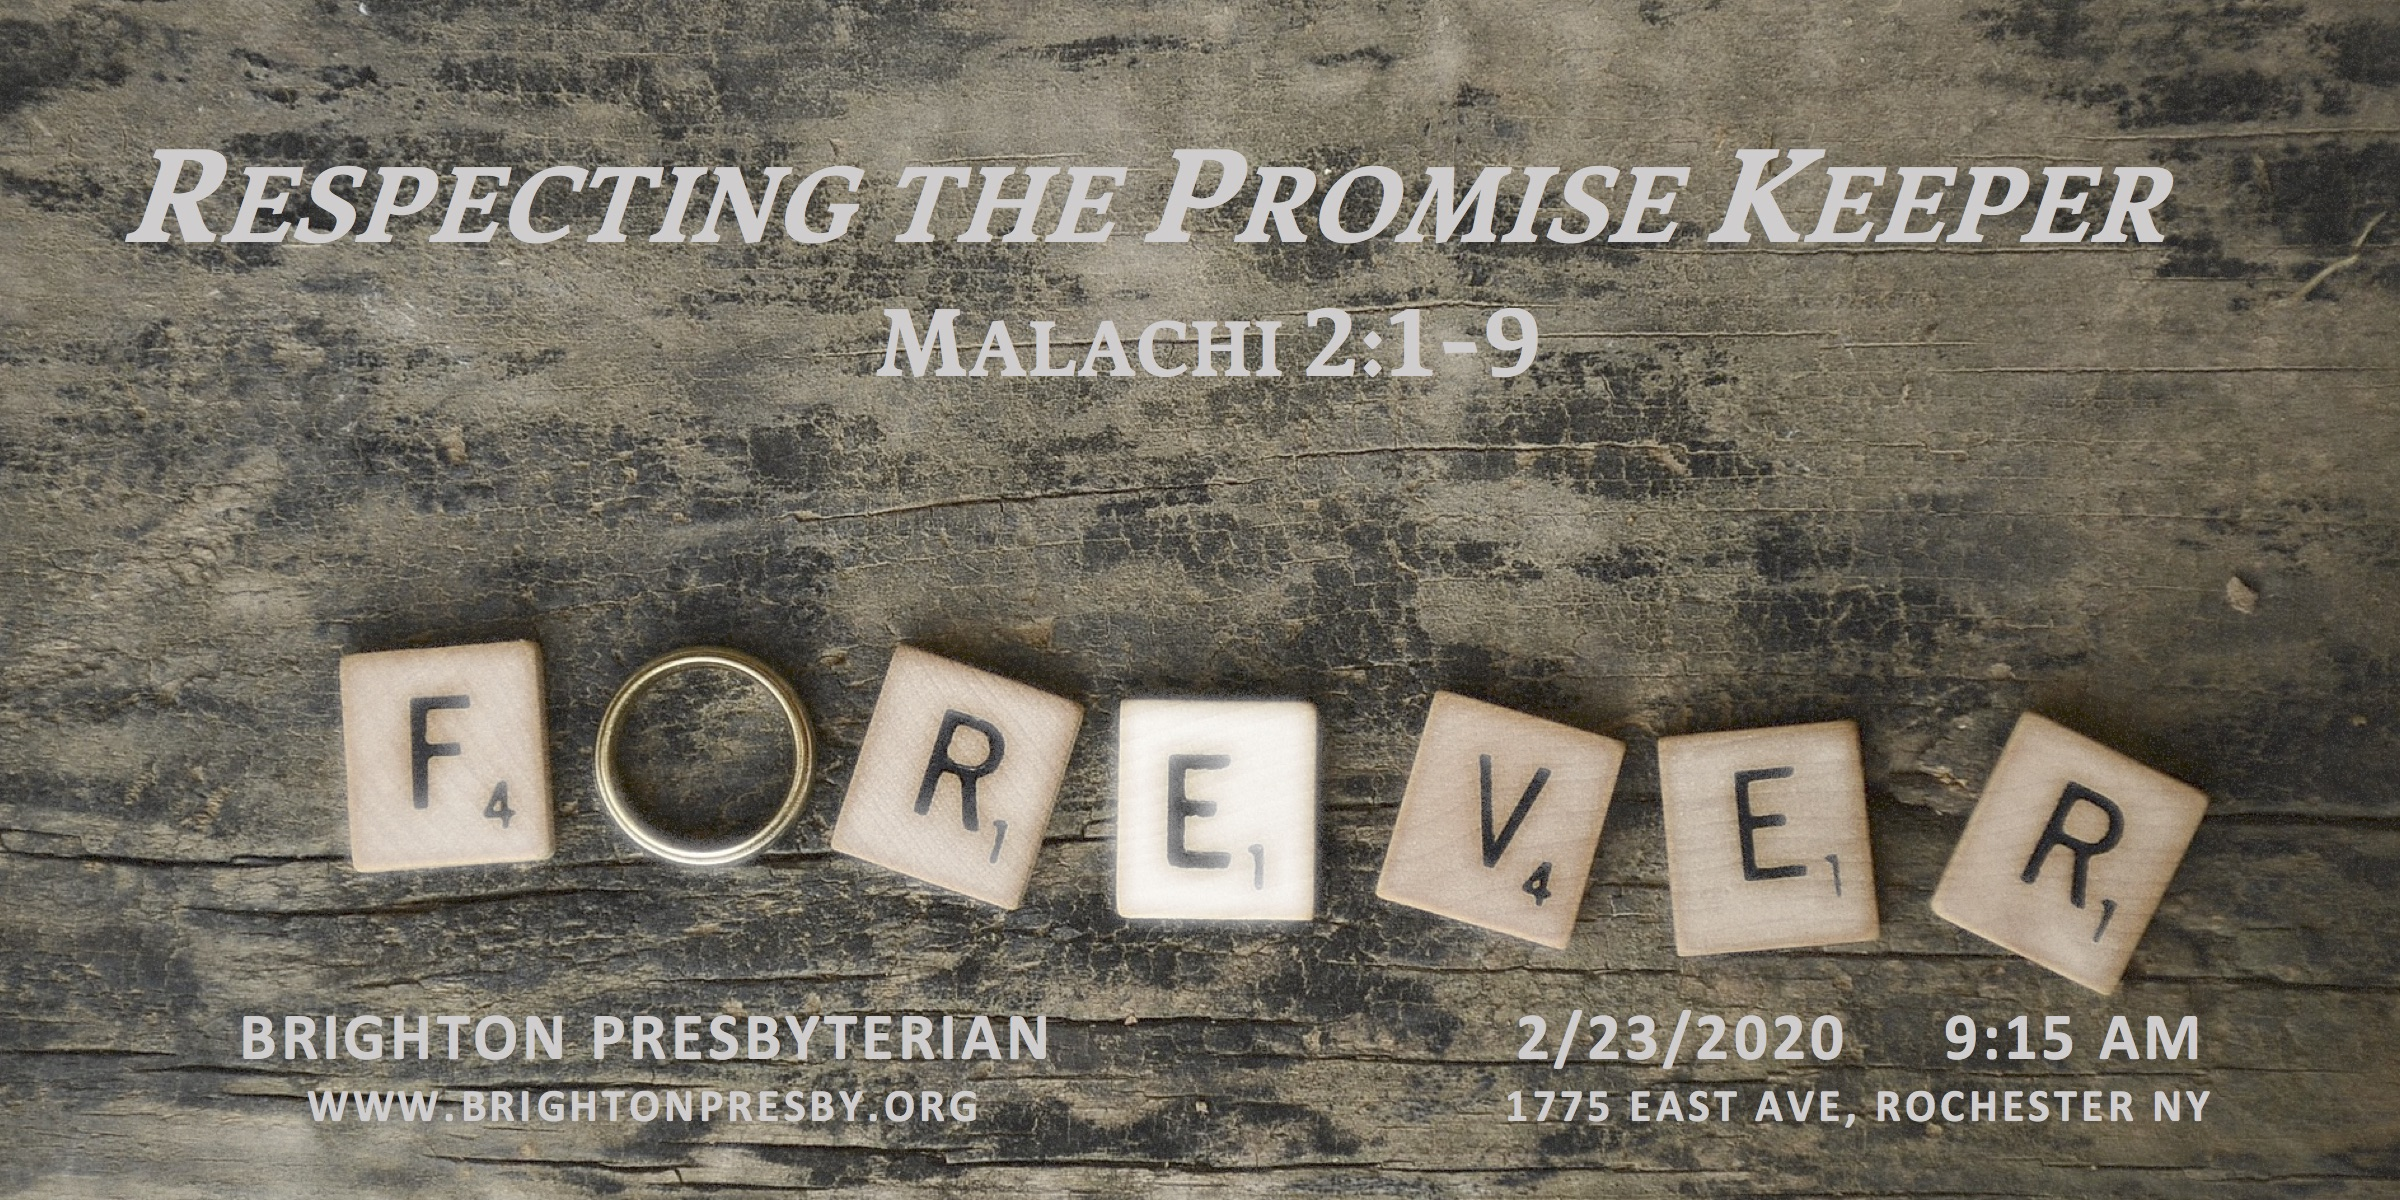 Respecting the Promise Keeper